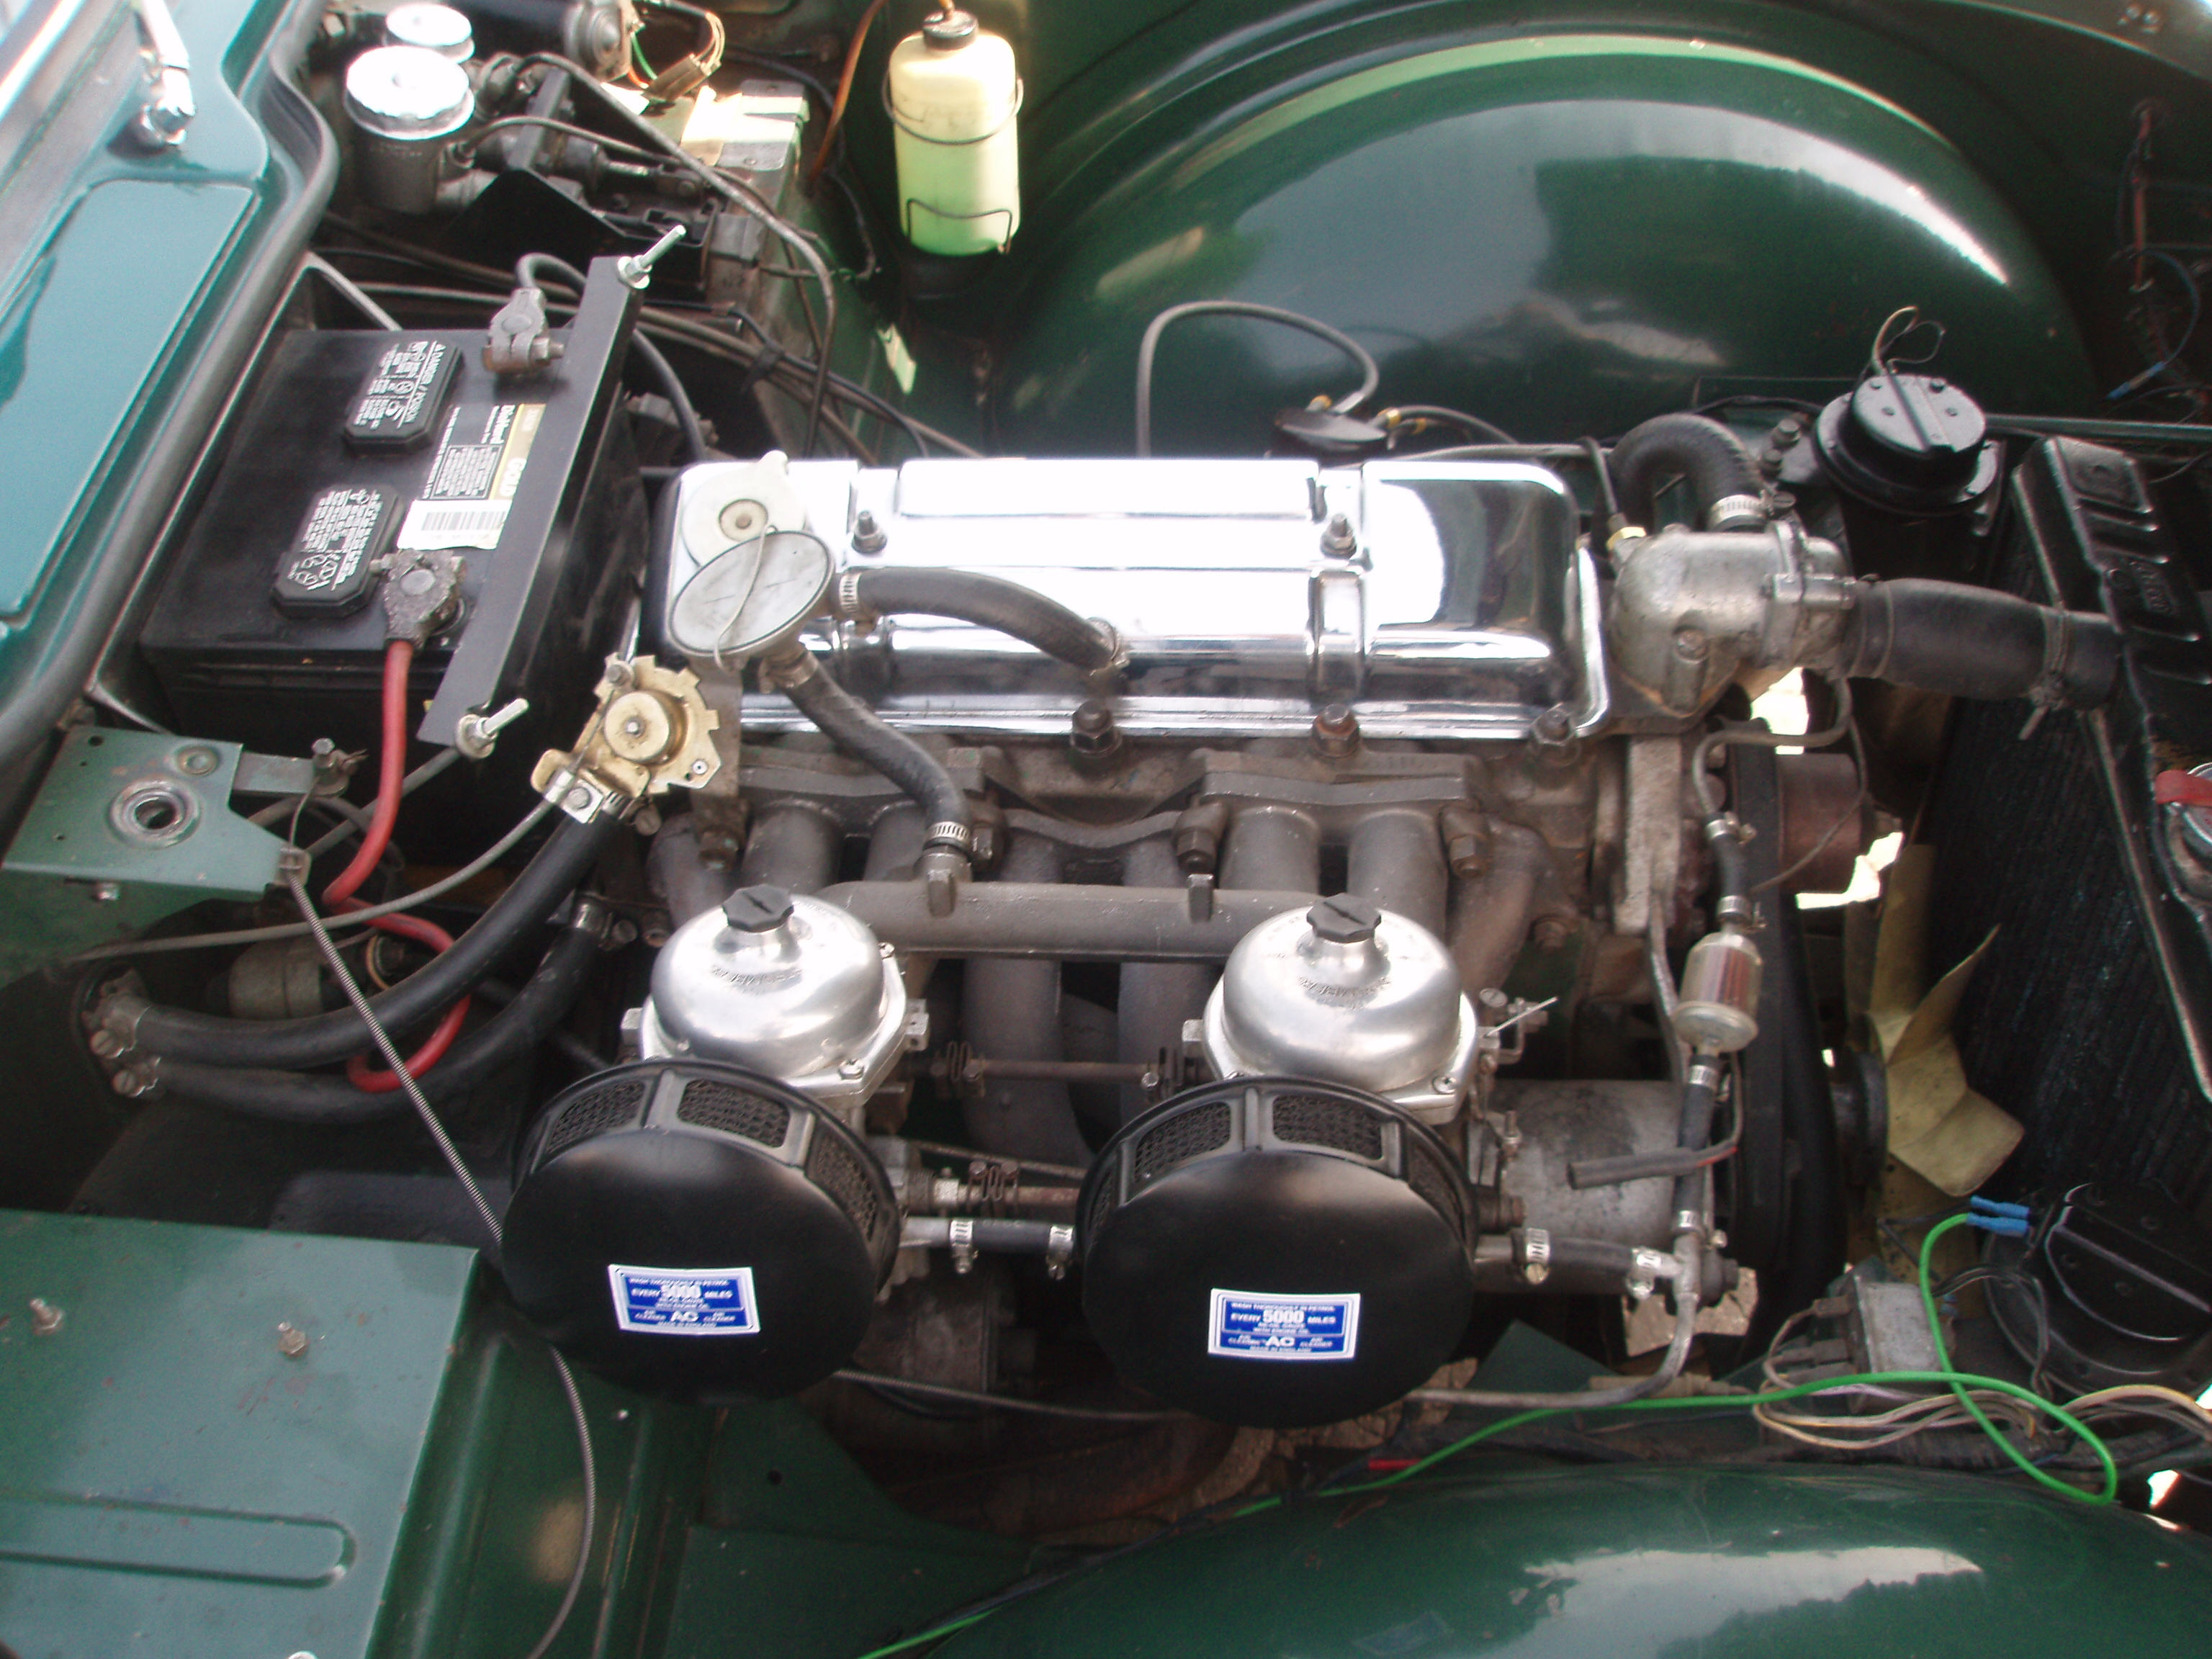 File:Triumph TR4 late US engine jpeg - Wikimedia Commons